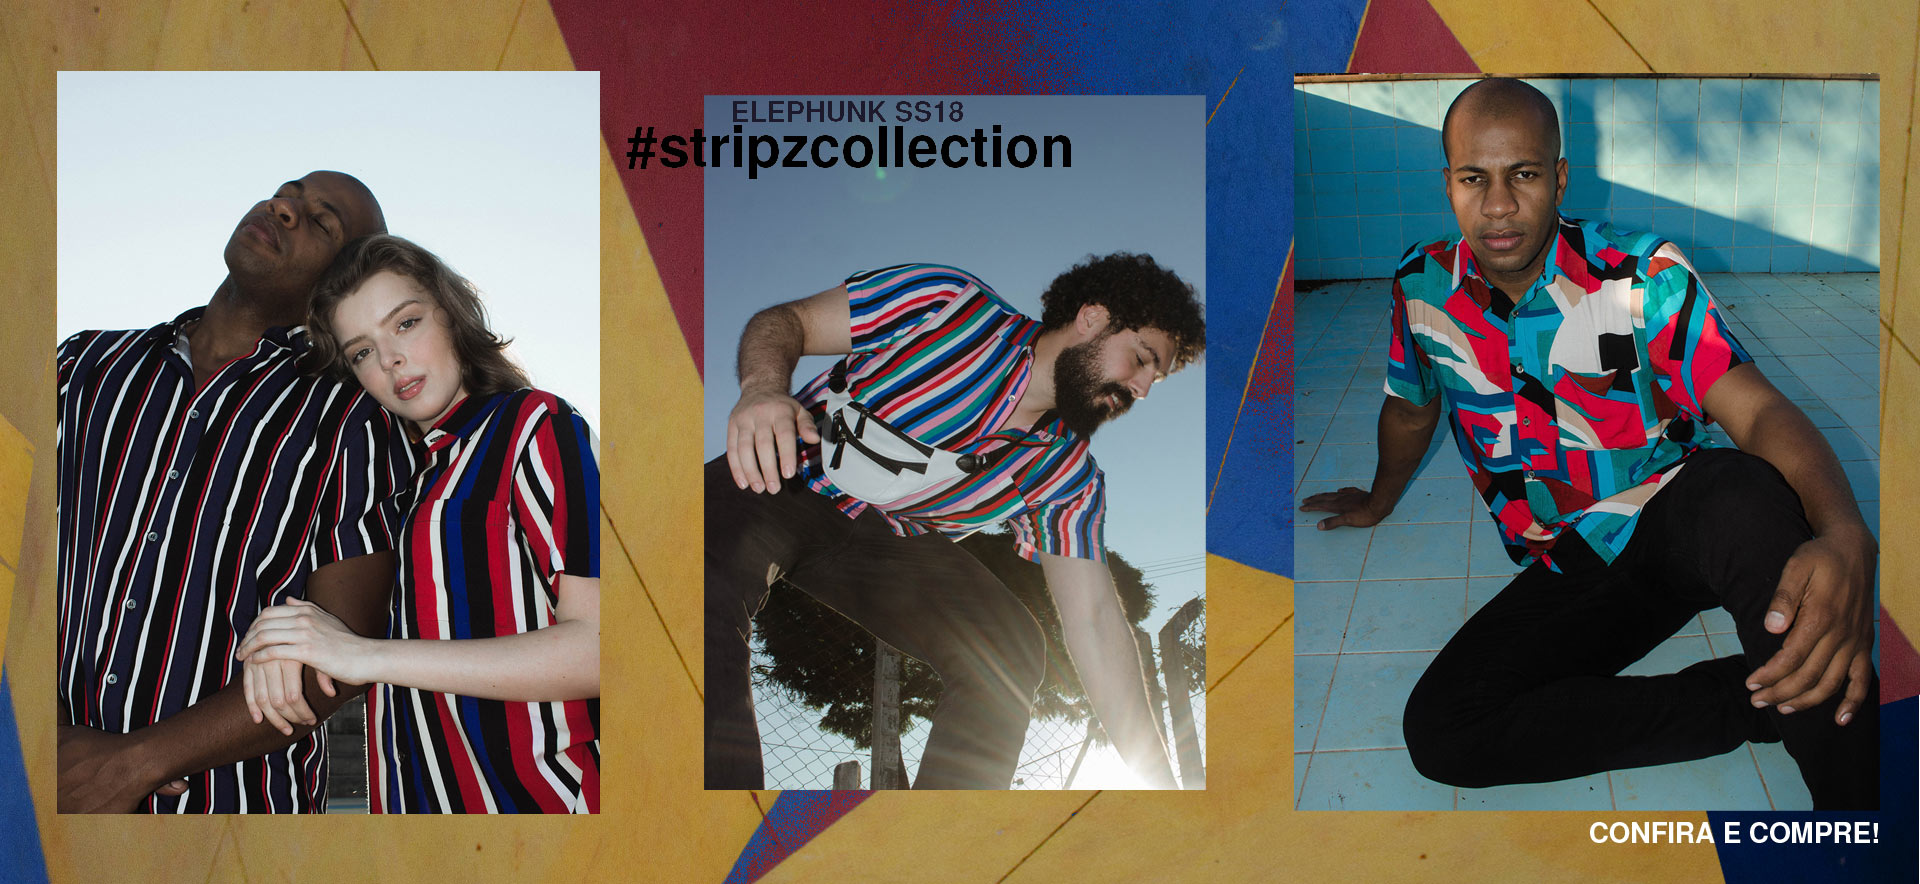 #STRIPZCOLLECTION